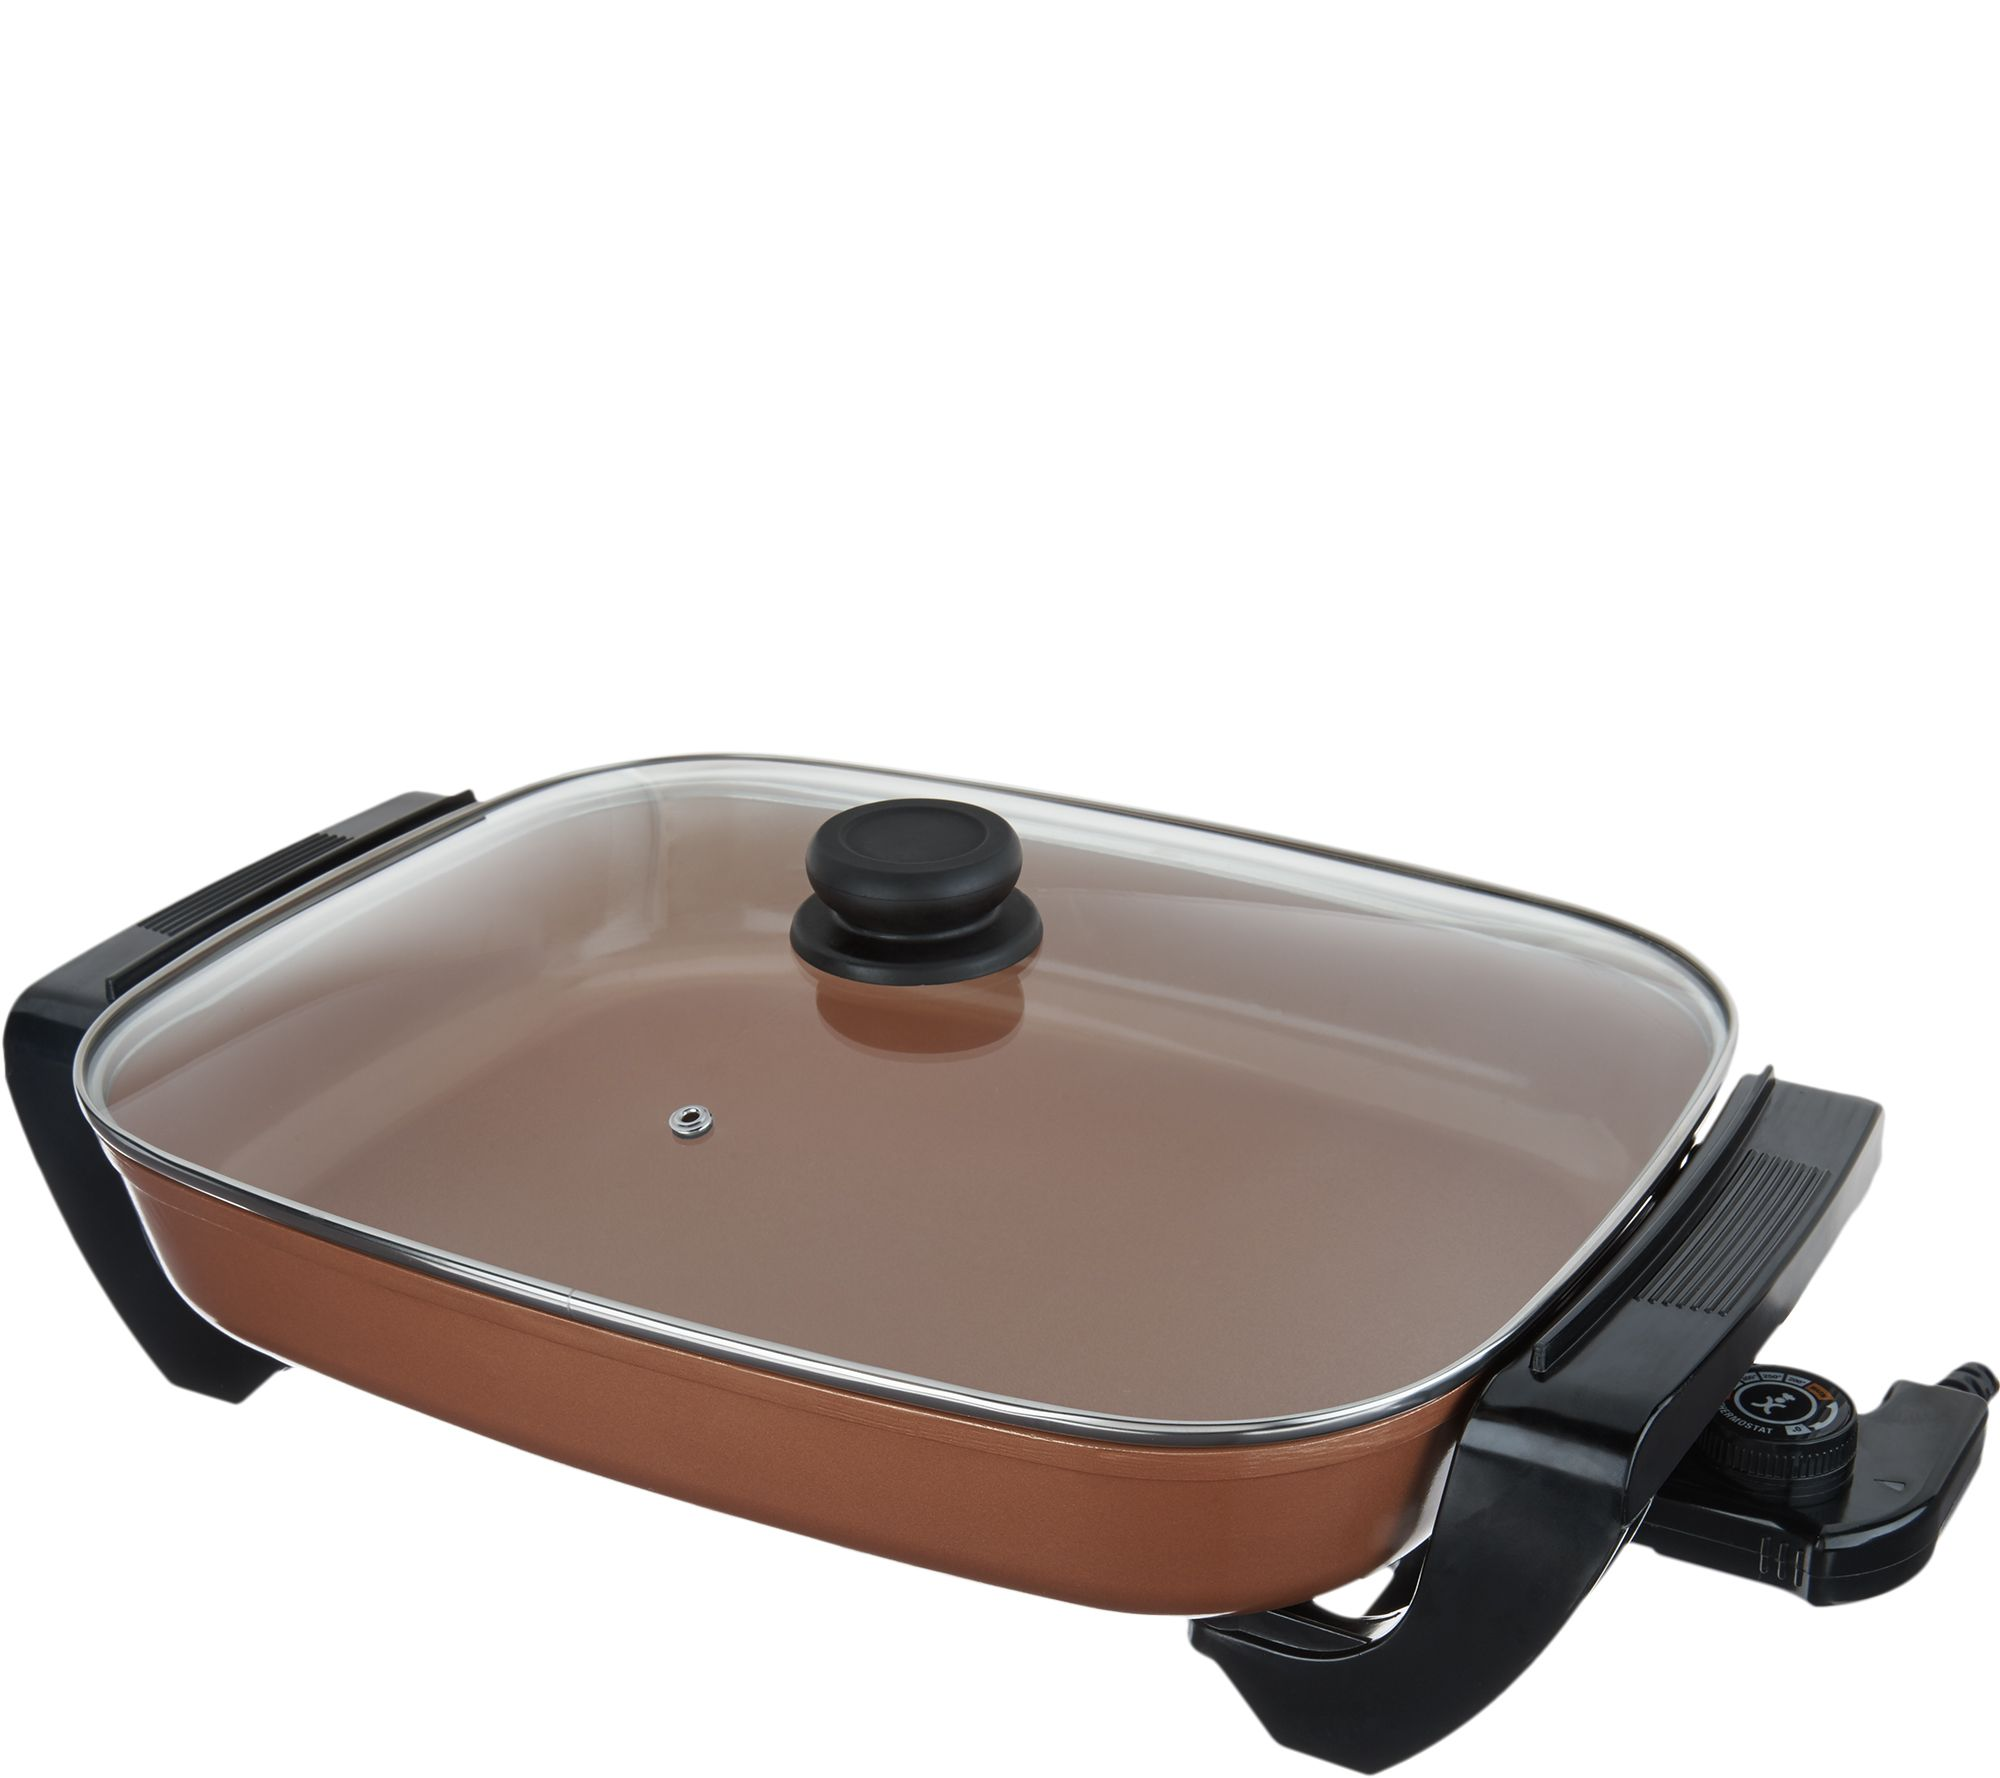 Copper Chef Nonstick Electric Skillet With Lid Page 1 Qvc Com